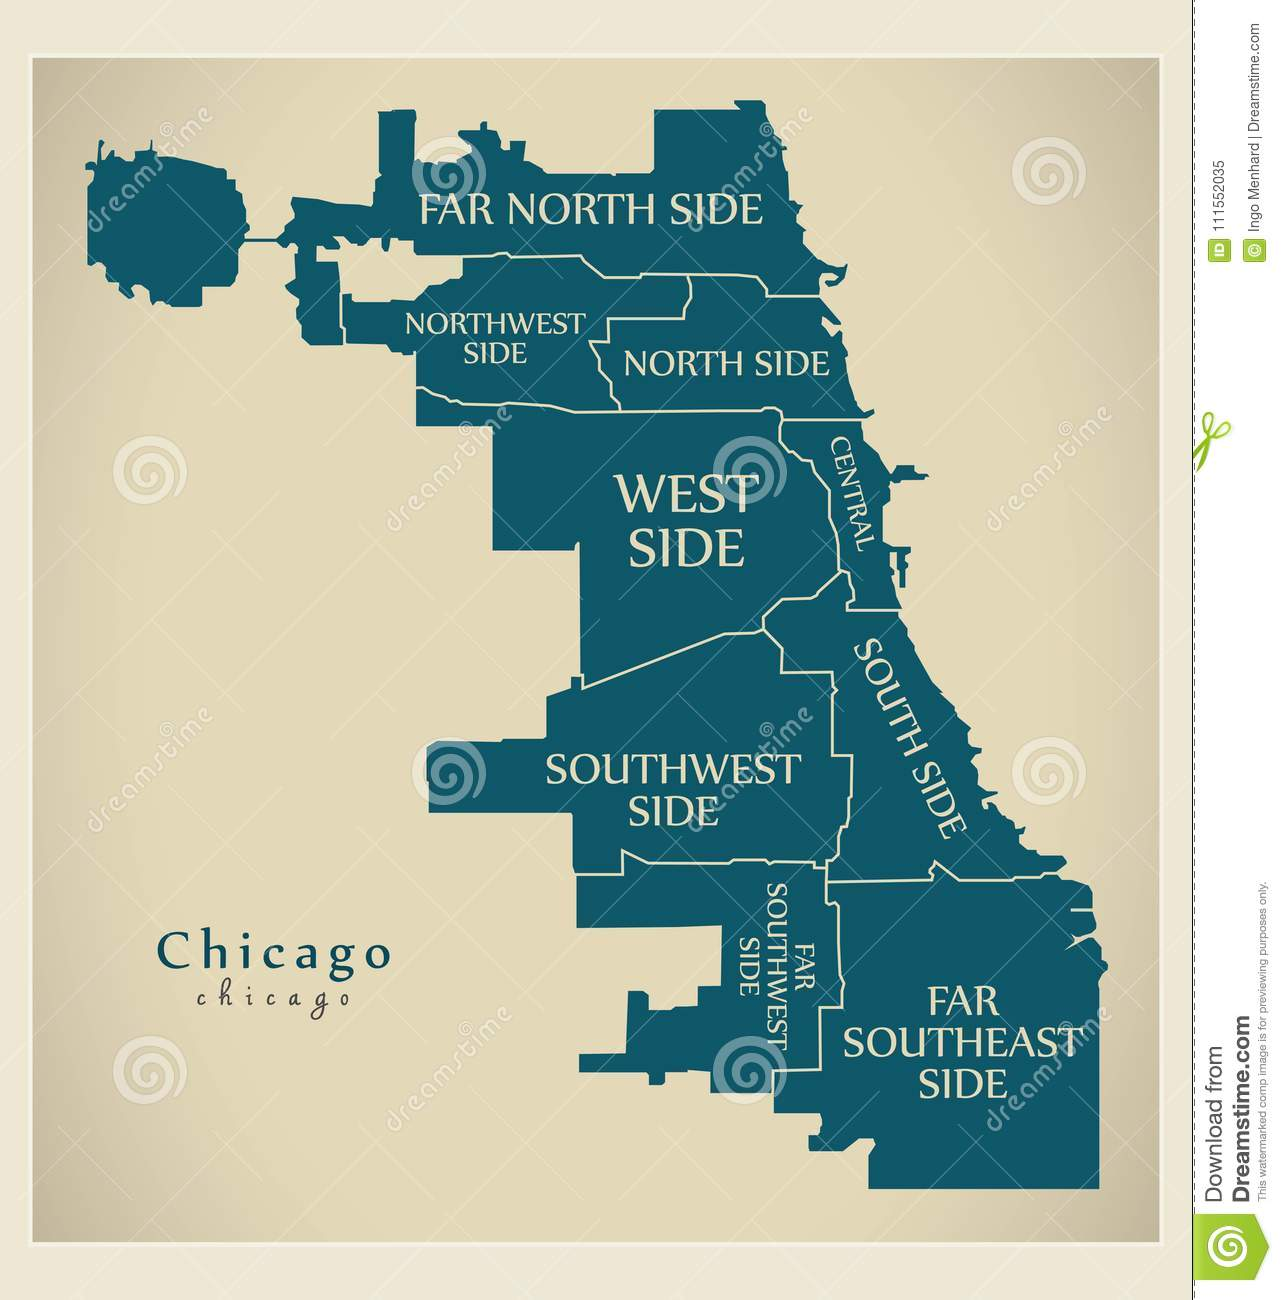 Chicago Boroughs Map Modern City Map   Chicago City Of The USA With Boroughs And Titles